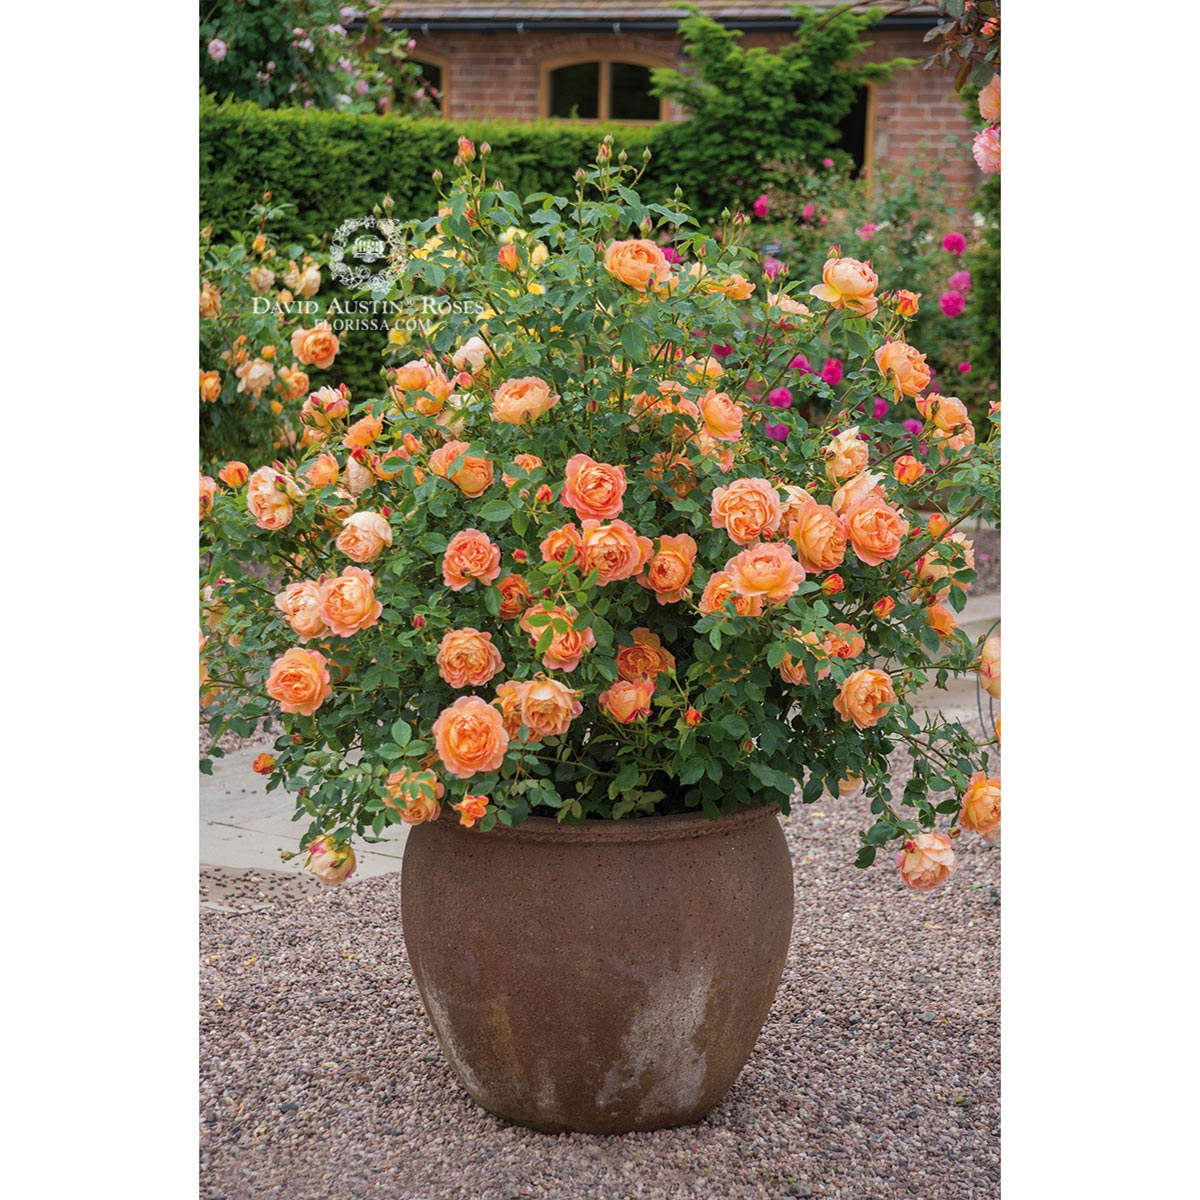 DA_Rose_Lady_of_Shalott_(Ausnyson)_in_pot_1200px.jpg